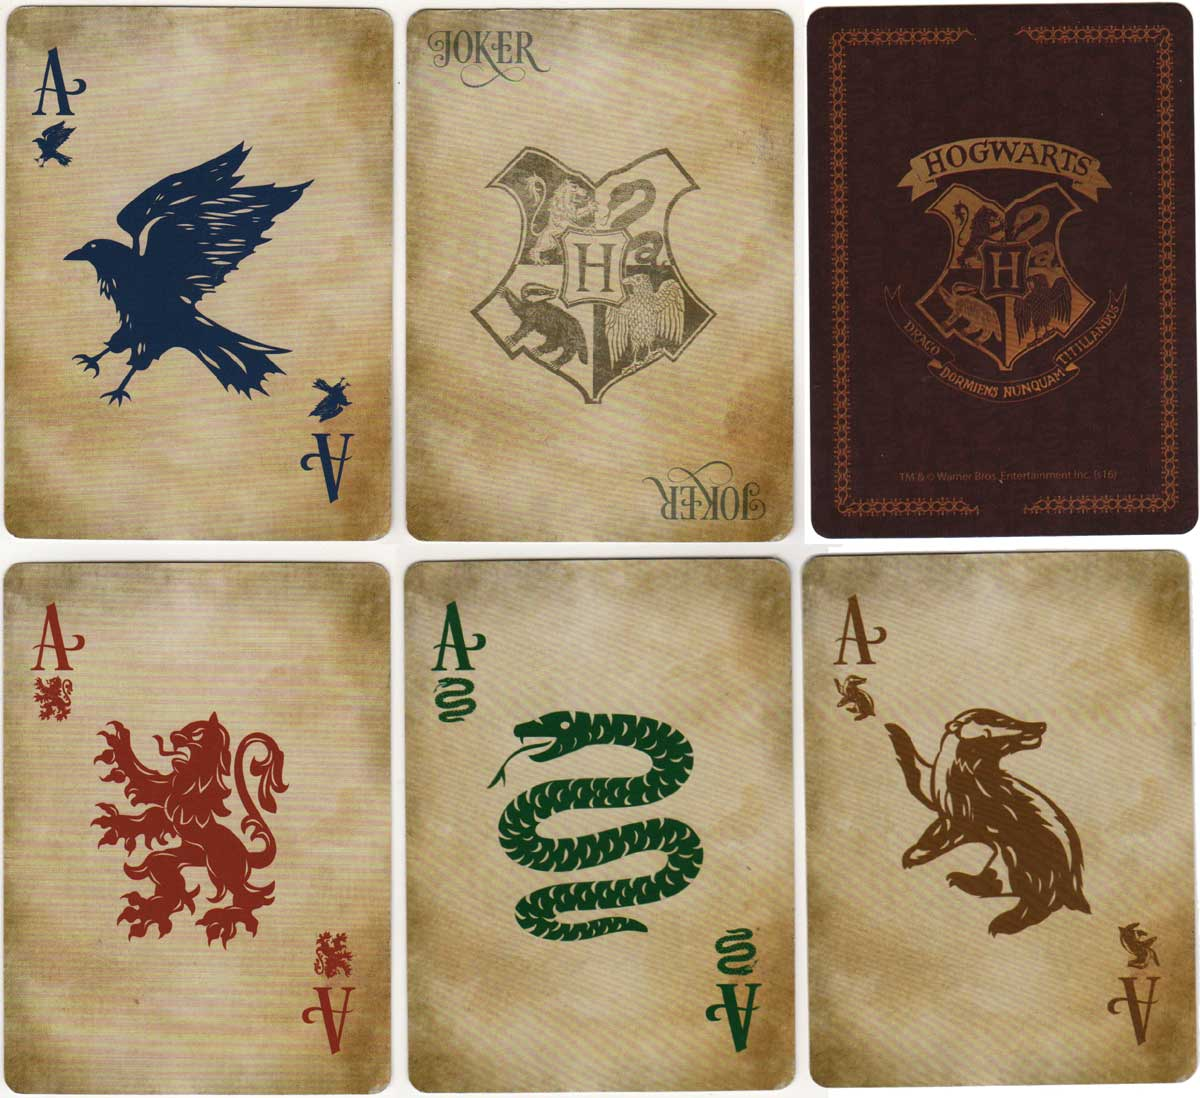 Hogwarts Playing Cards, c.2016